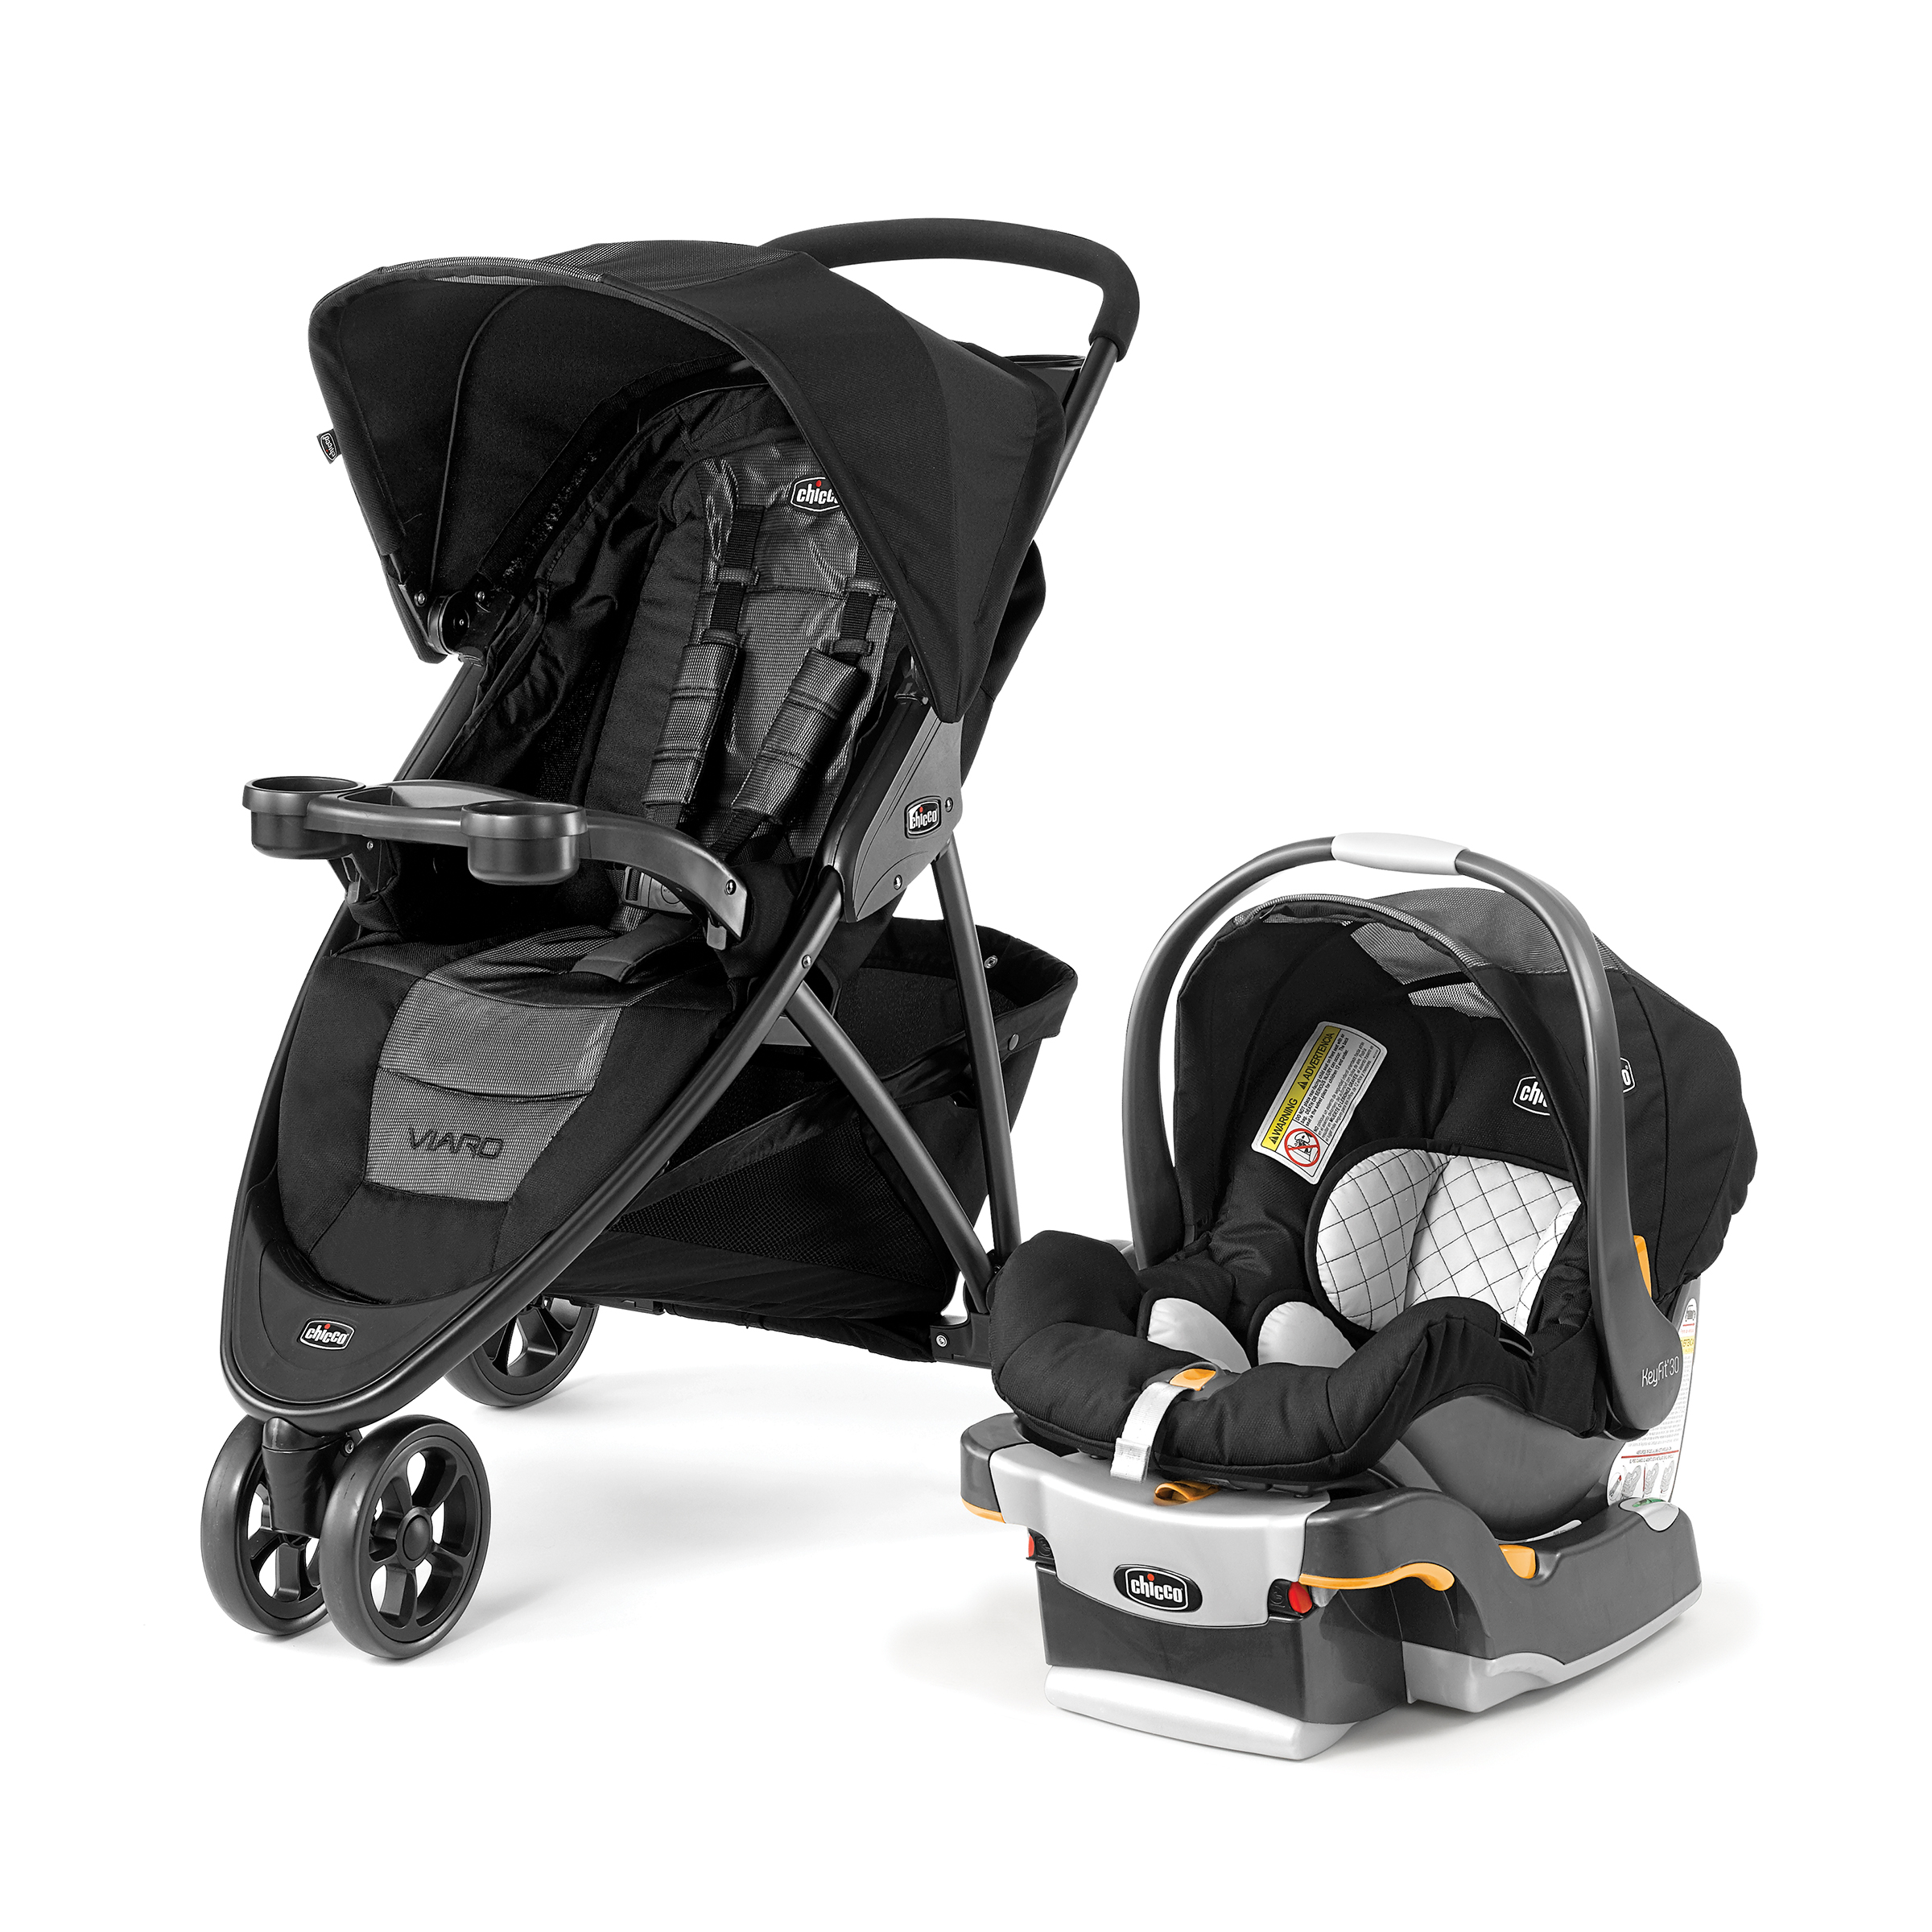 Chicco Viaro Travel System - Apex